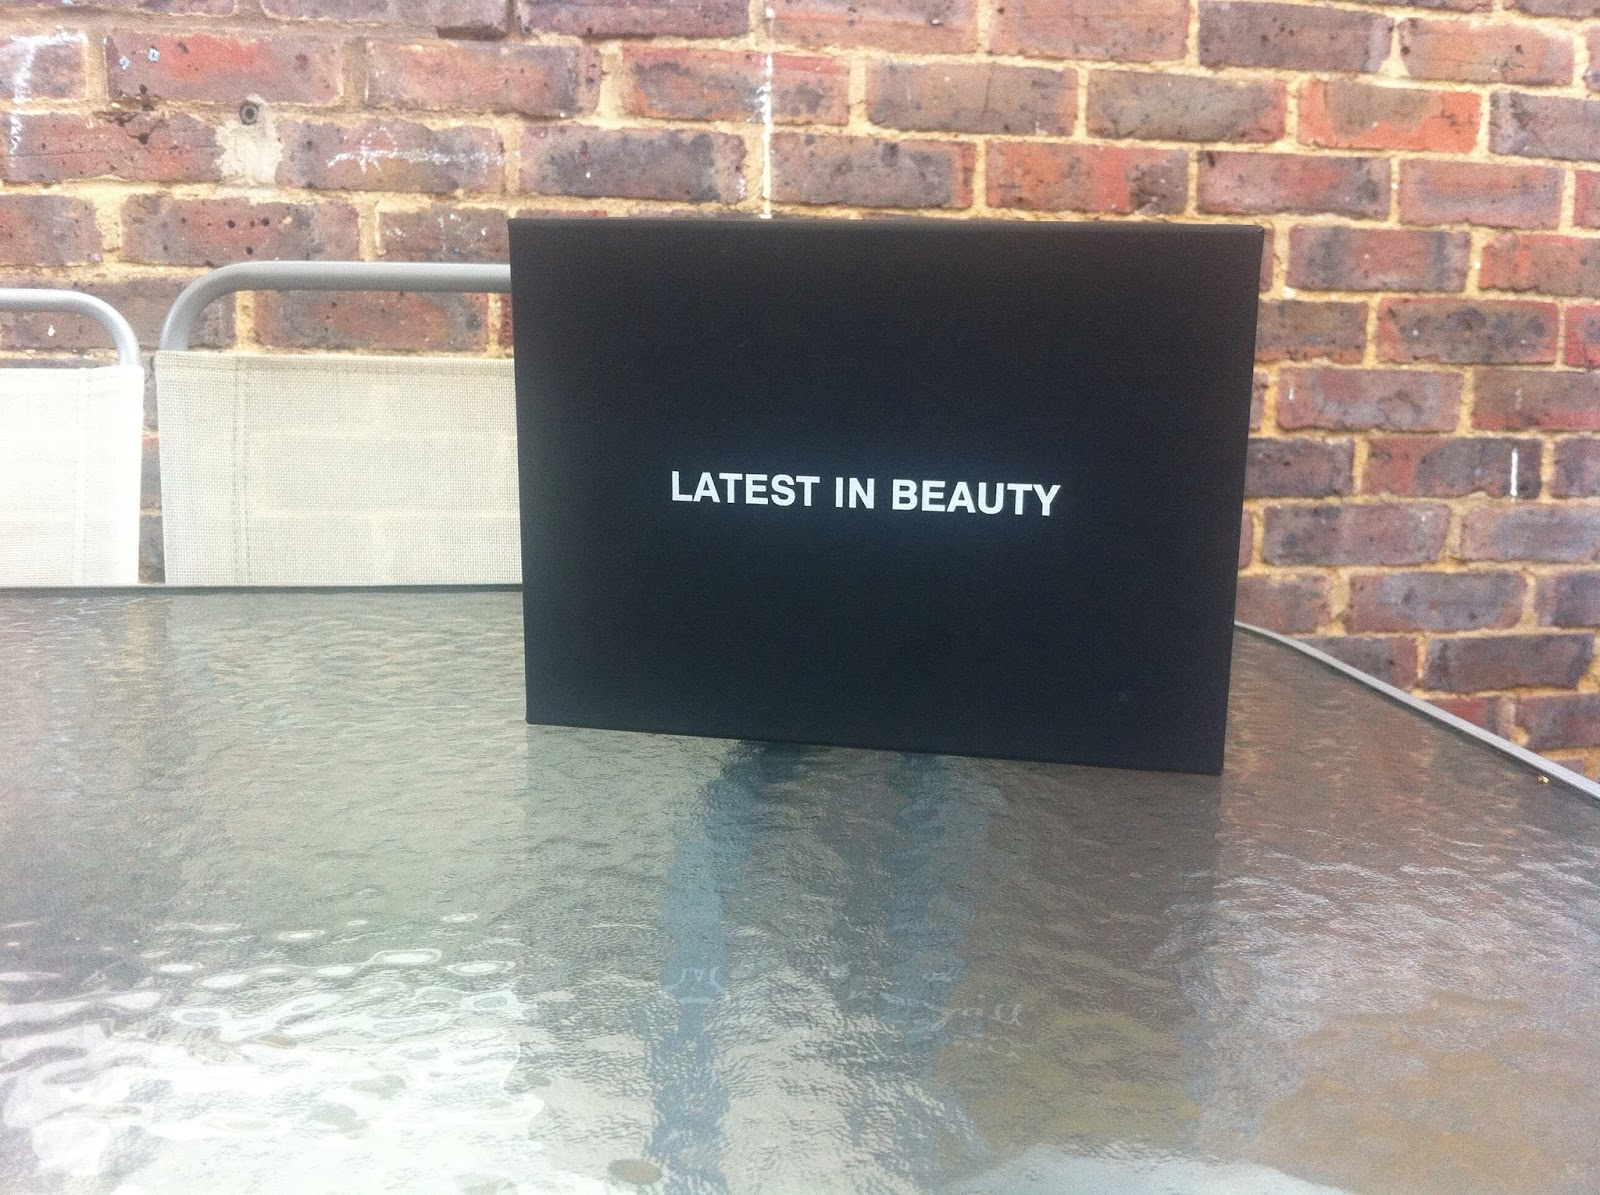 Summers Beauty: LIB Collections Editor's Picks box